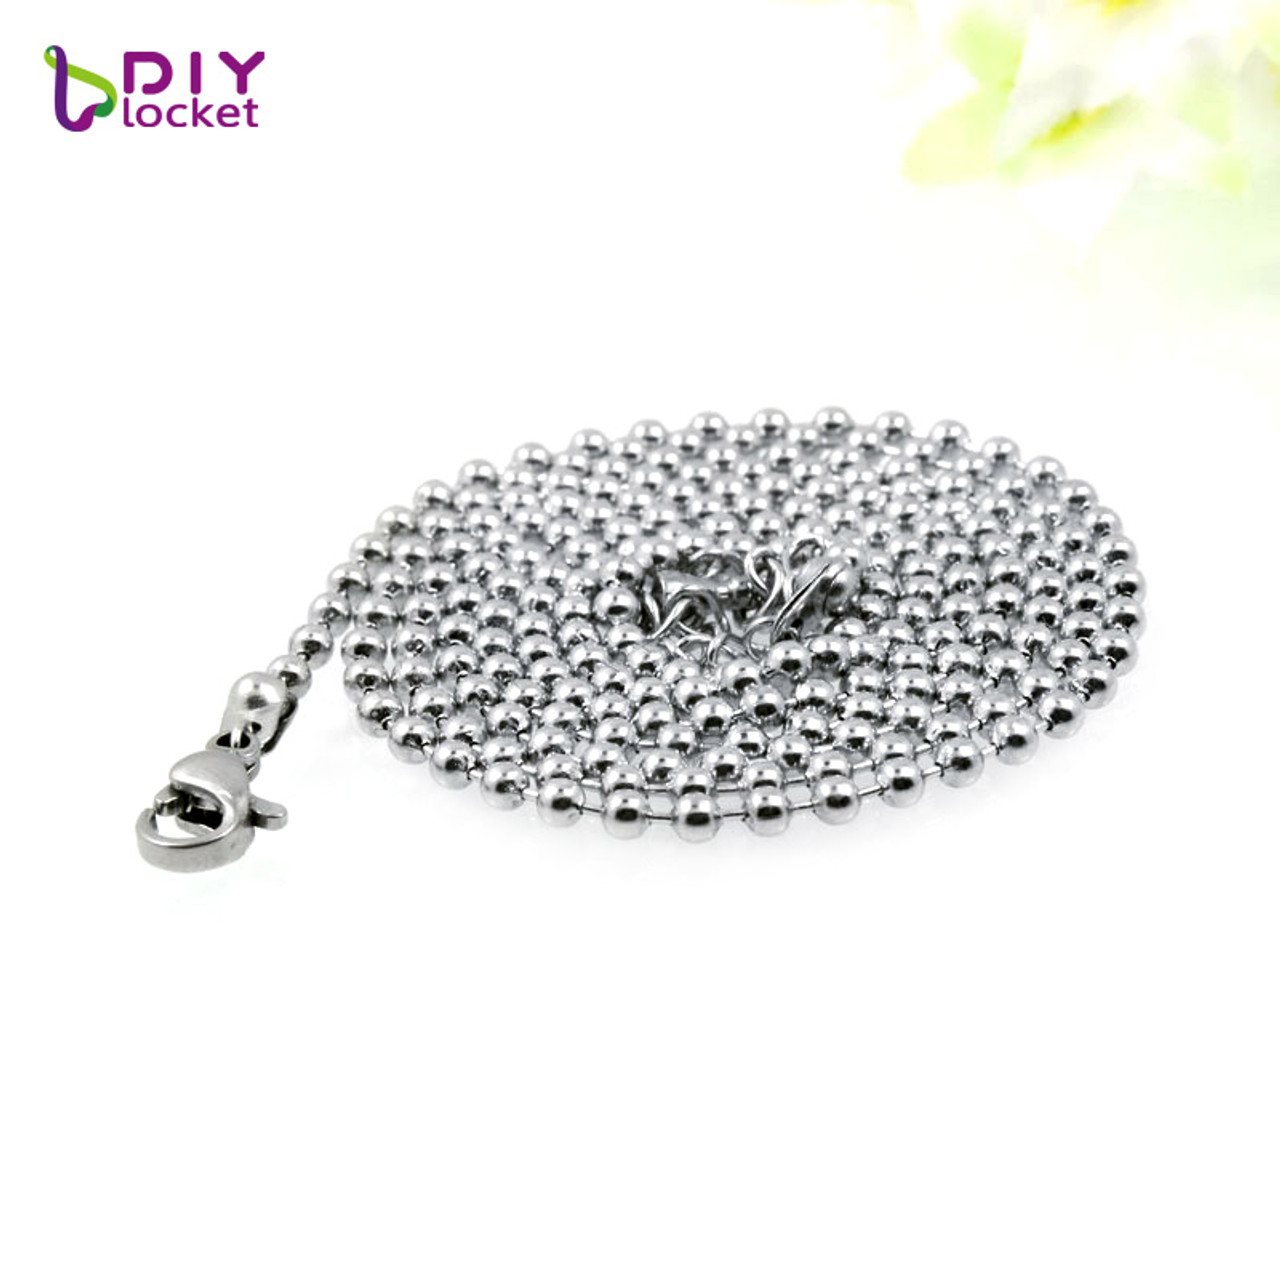 """LOT 10 PCS HIGH QUALITY STAINLESS STEEL BALL CHAIN NECKLACES 30/"""" 2.4MM BEAD"""